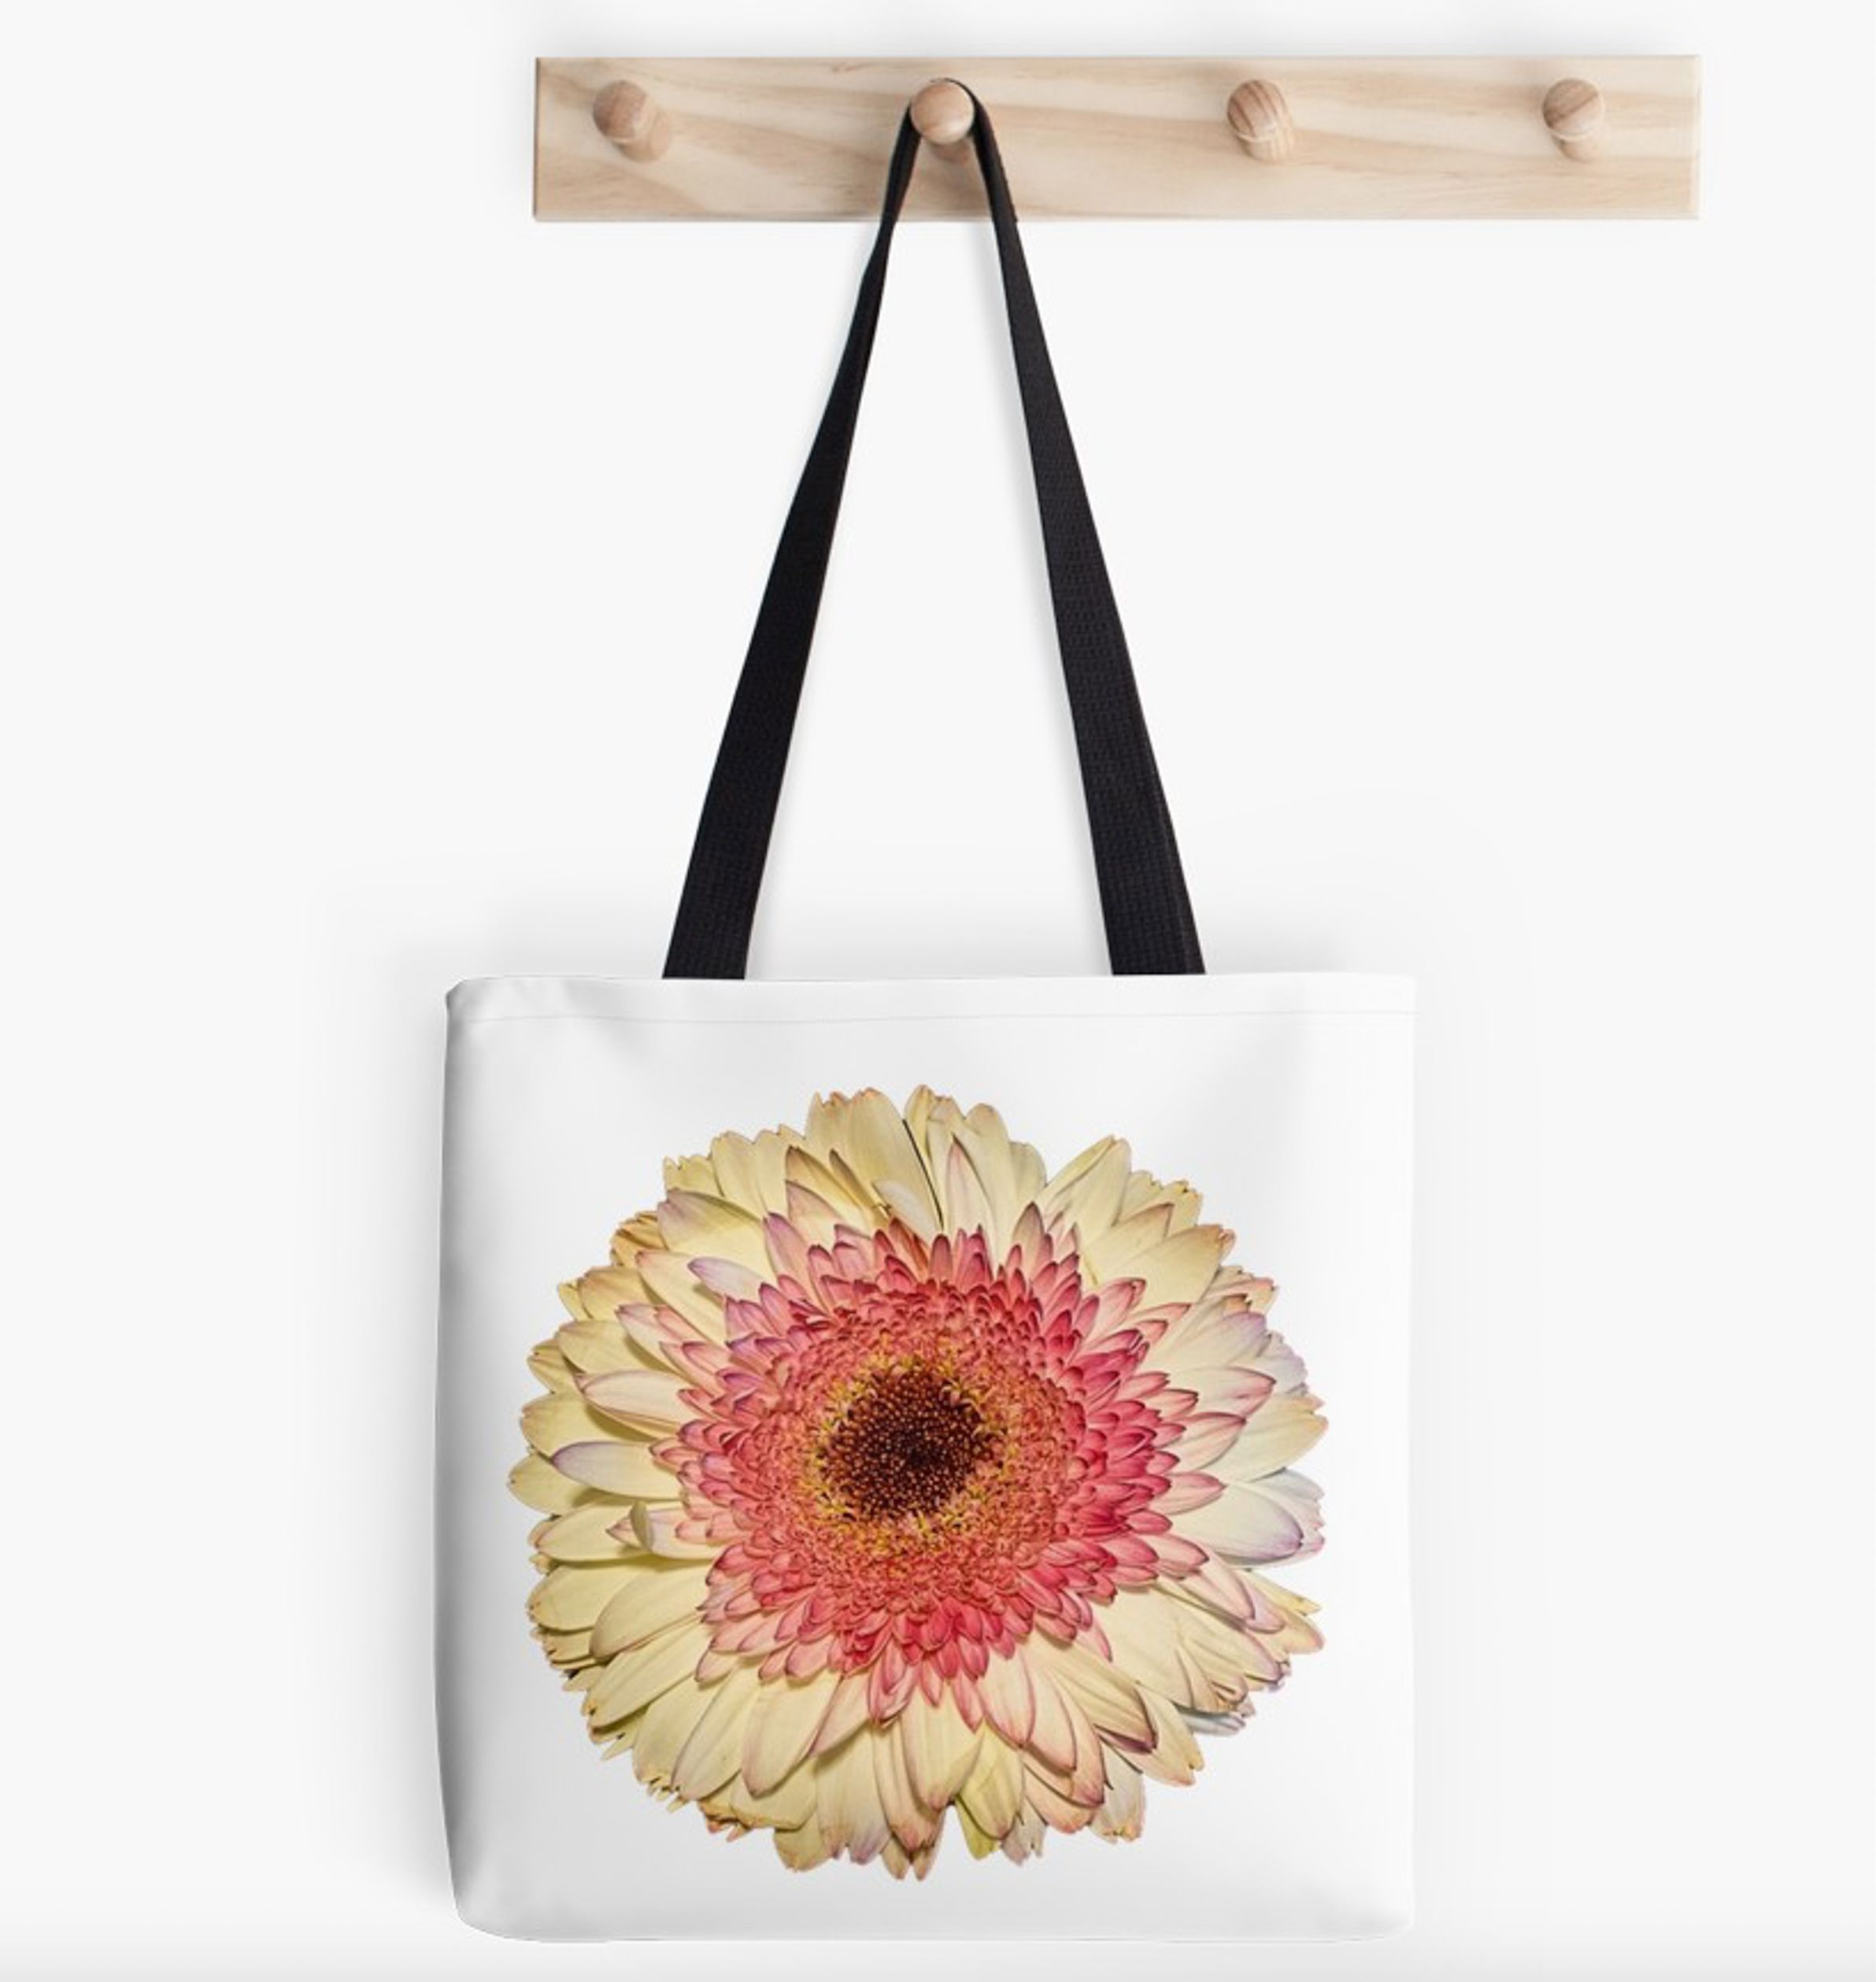 Pastel Gerber Daisy Flower Blooming Tote Bag By Jacqueline Cooper